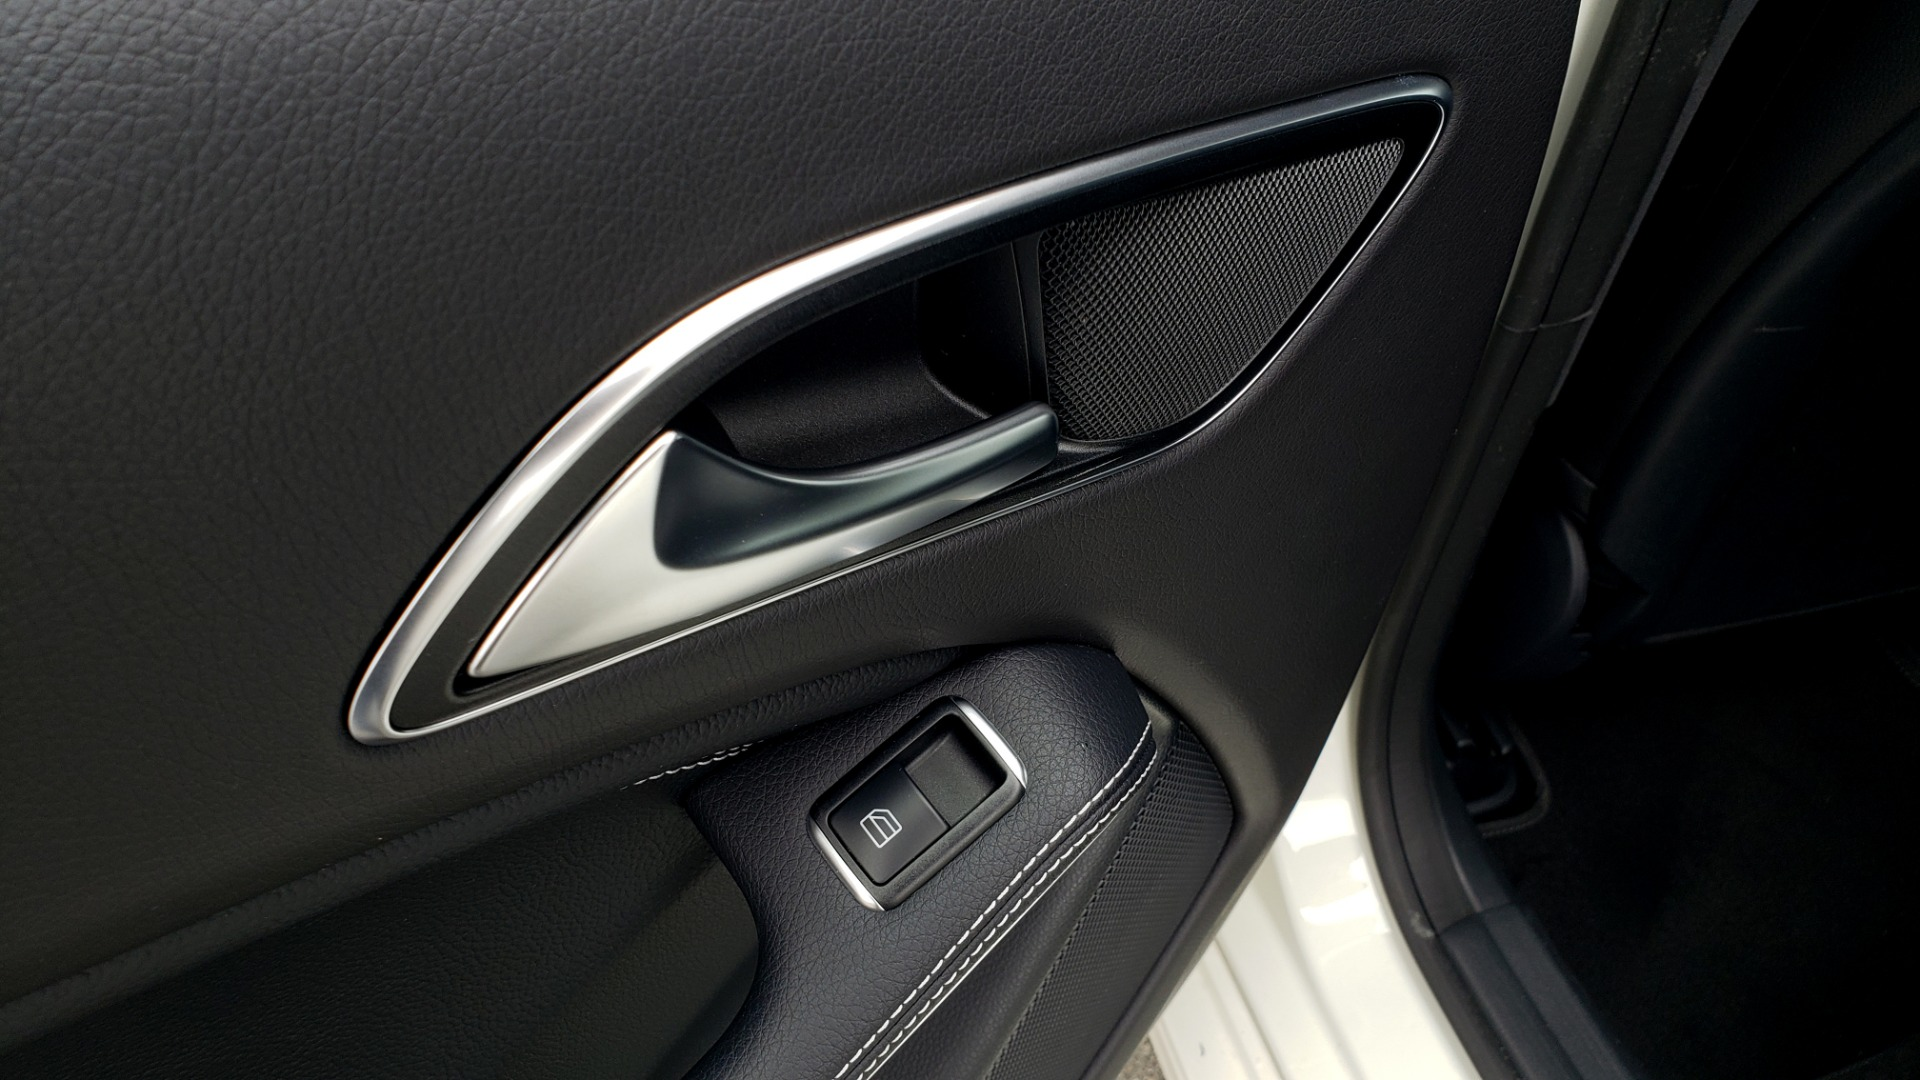 Used 2018 Mercedes-Benz CLA 250 PREMIUM / NAV / PANO-ROOF / APPLE CARPLAY / REARVIEW for sale $23,995 at Formula Imports in Charlotte NC 28227 60